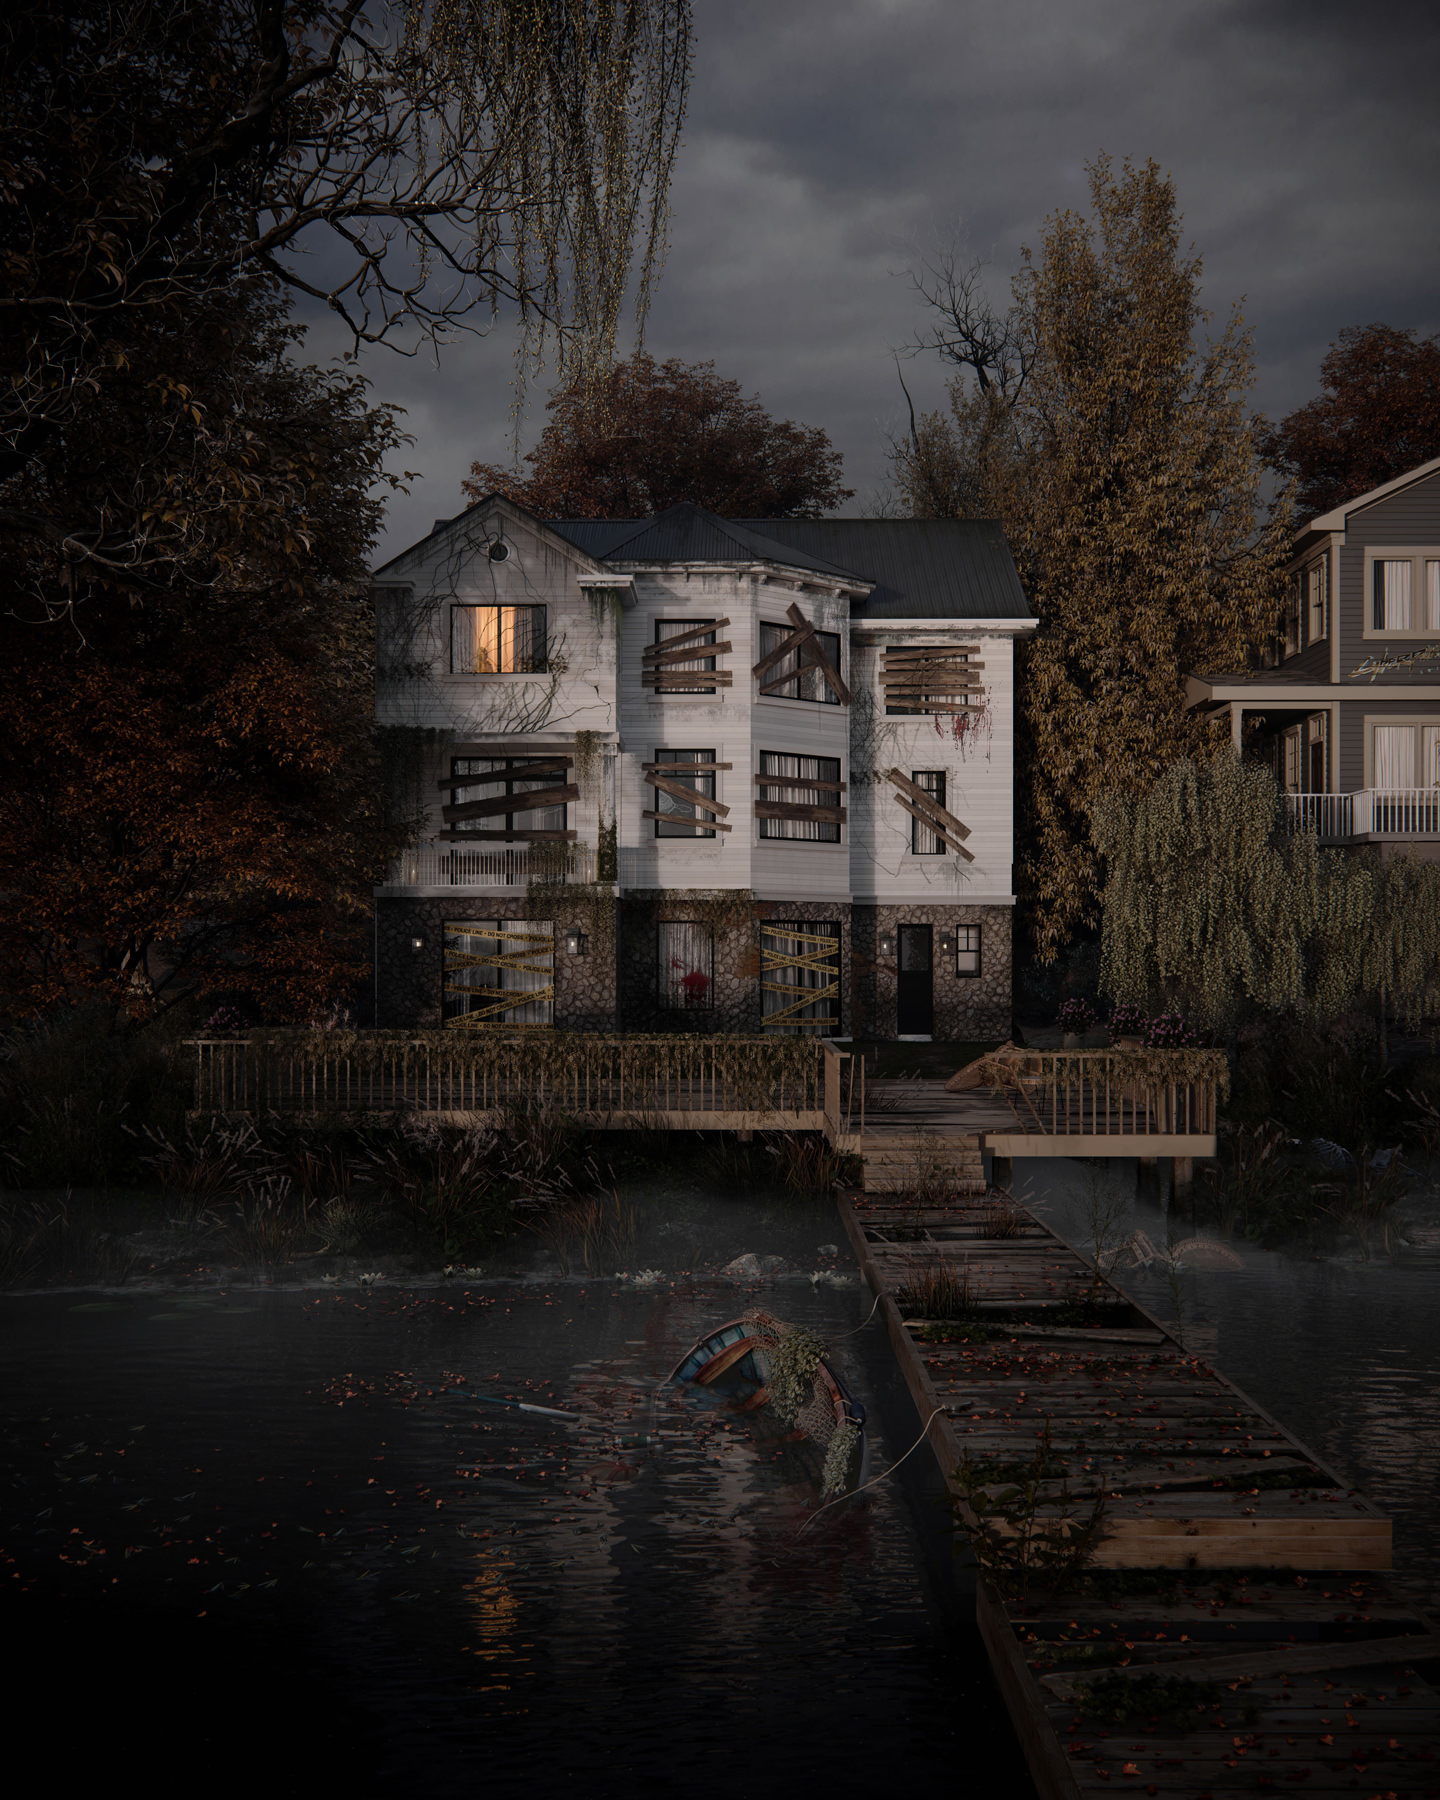 3D exterior house visuaization with spills of blood and nailed up windows and doors, boat drowned in a lake near the dilapidated pier